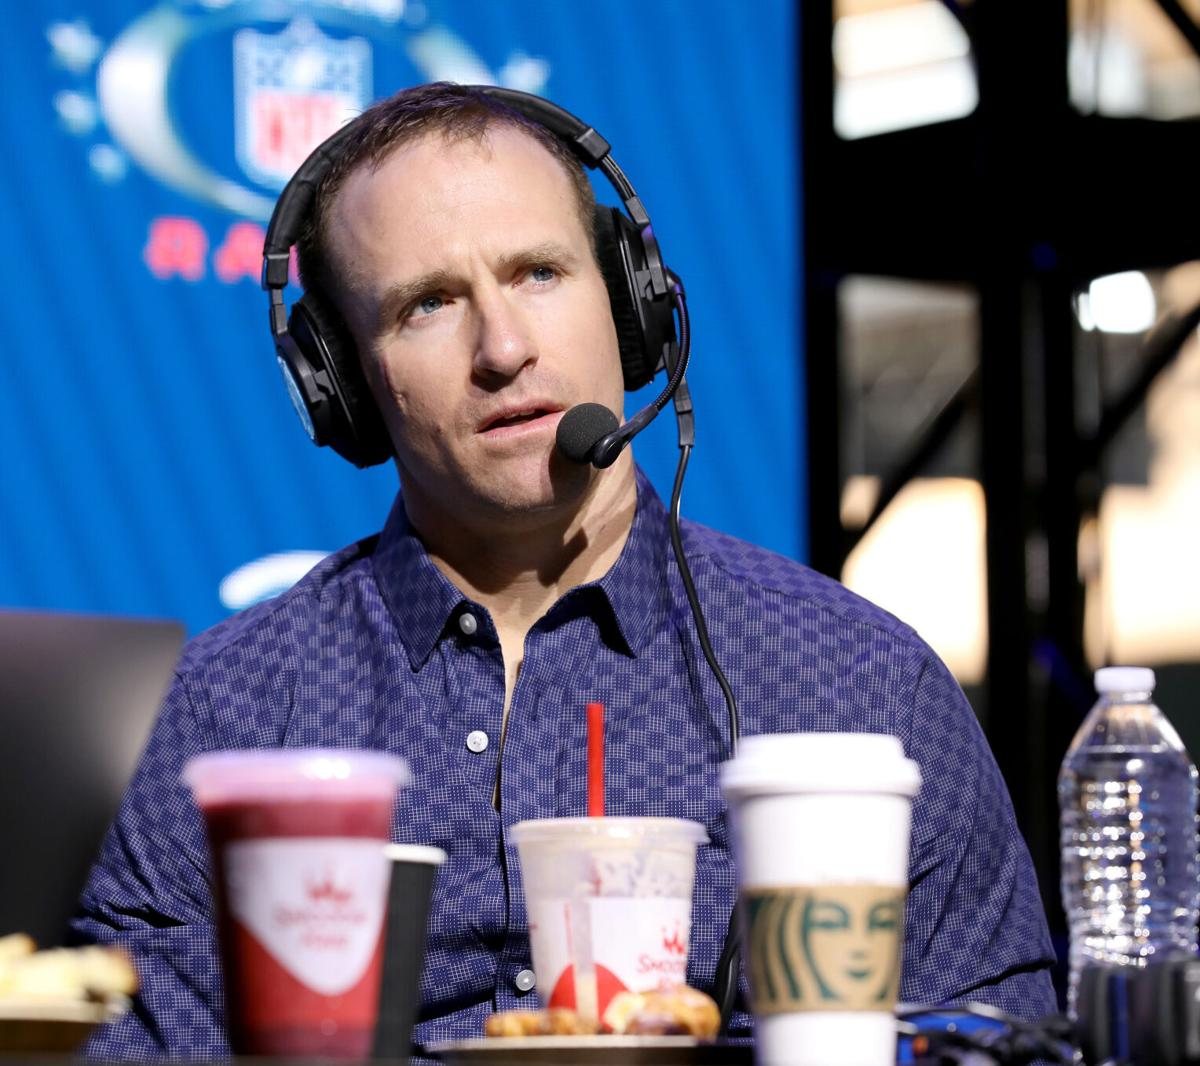 New Orleans Saints quarterback Drew Brees speaks onstage during day three of SiriusXM at Super Bowl LIV on Jan. 31, 2020 in Miami, Fla.